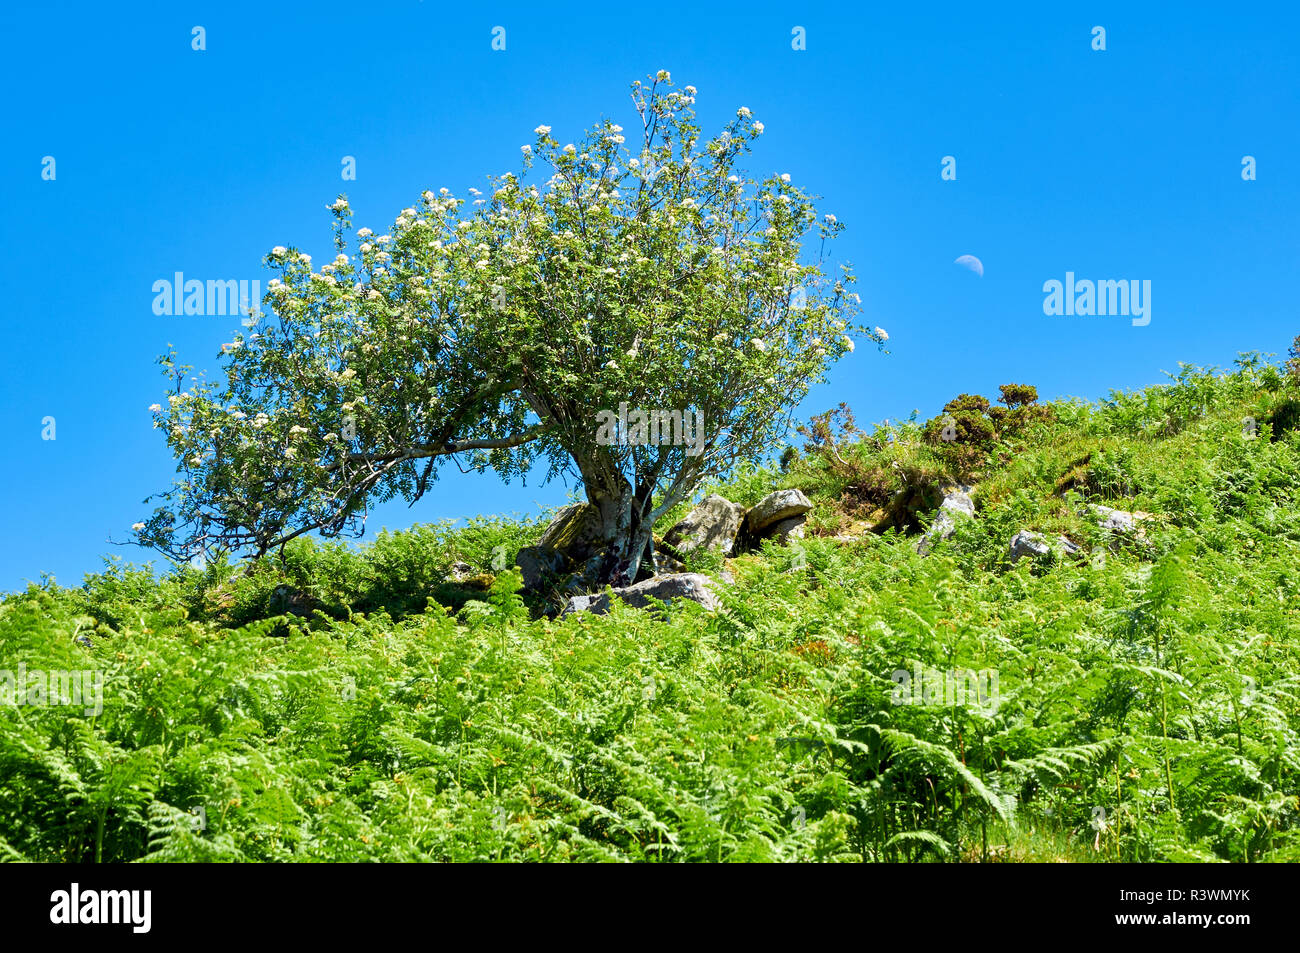 Windswept flowering rowan tree (Mountain Ash) on Dartmoor surrounded by green bracken with the moon visible in a blue May sky - Stock Image